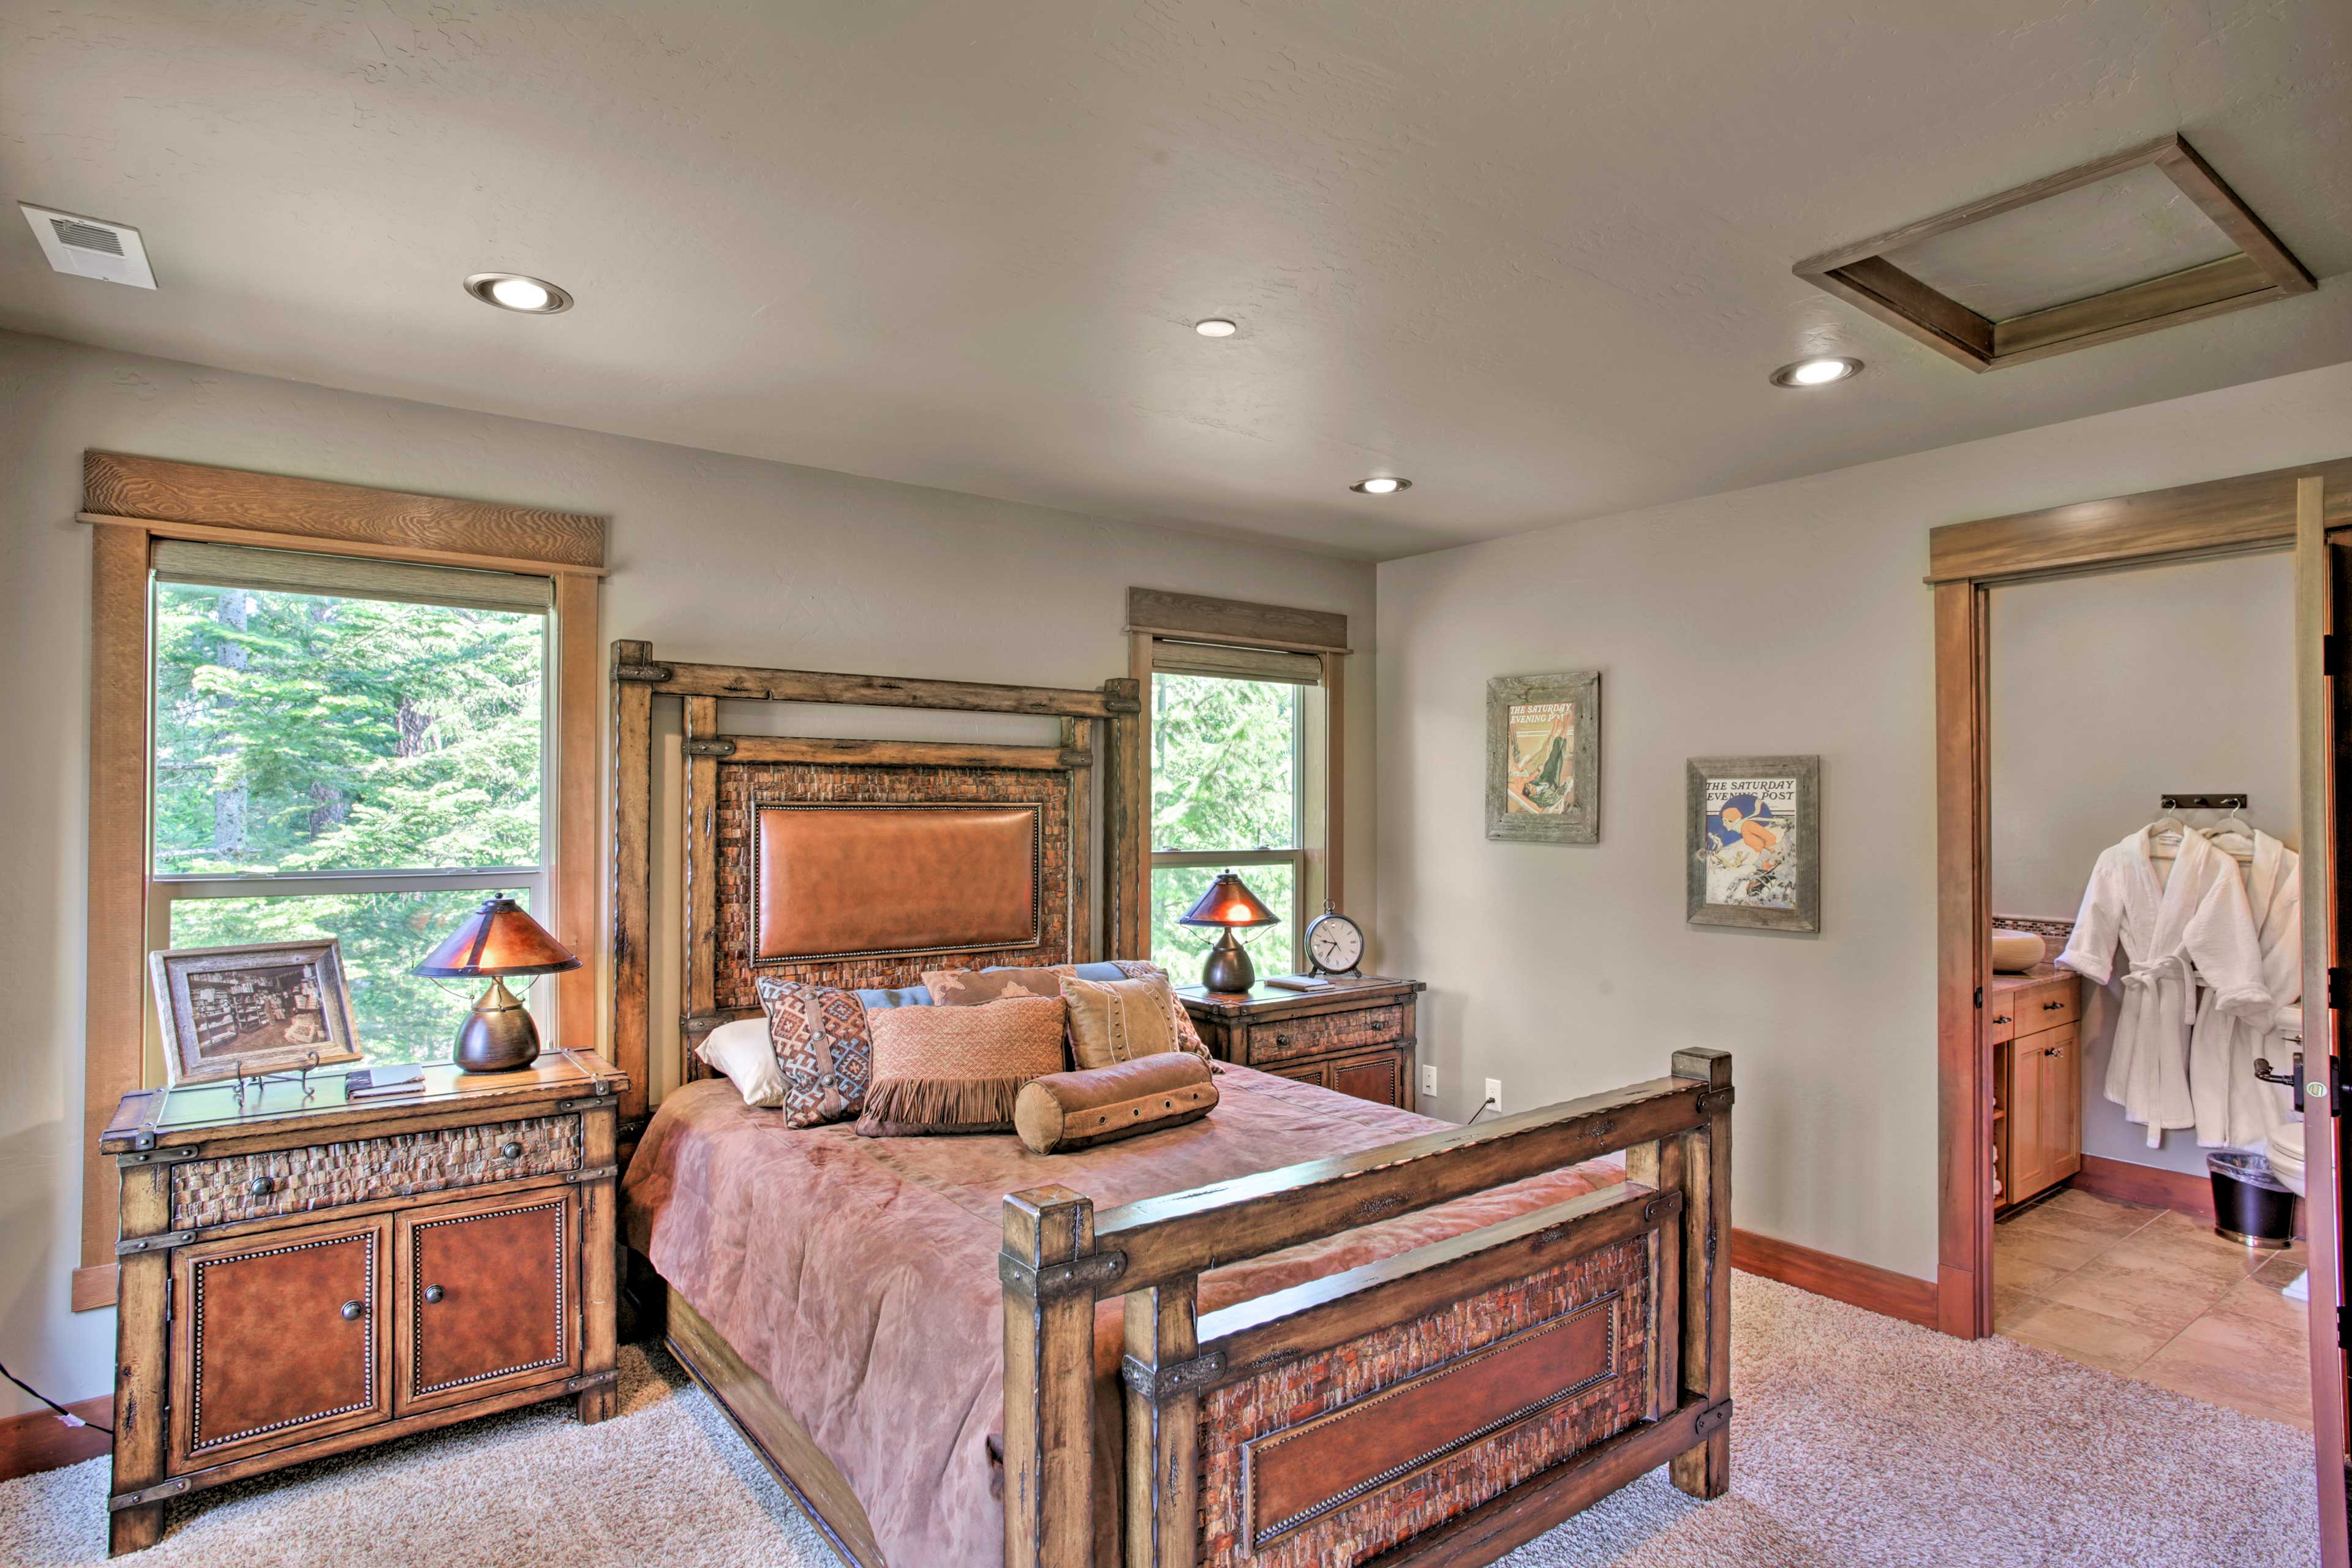 The upstairs master bedroom houses a queen bed.